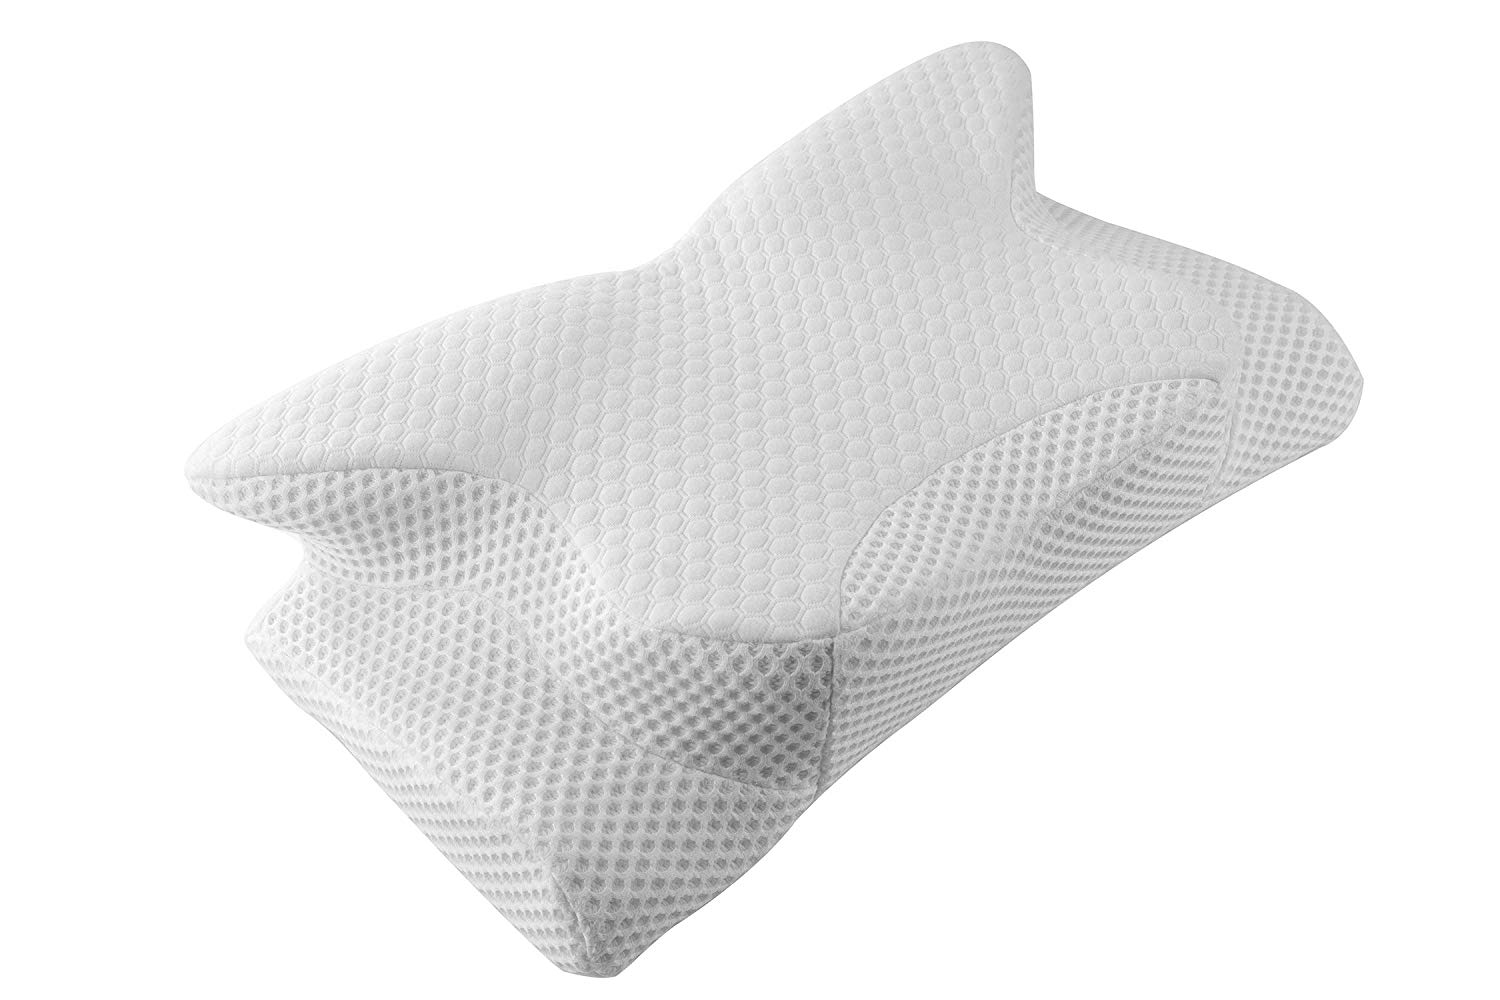 Coisum - The Best Orthopedic CPAP Pillow review by www.dailysleep.org